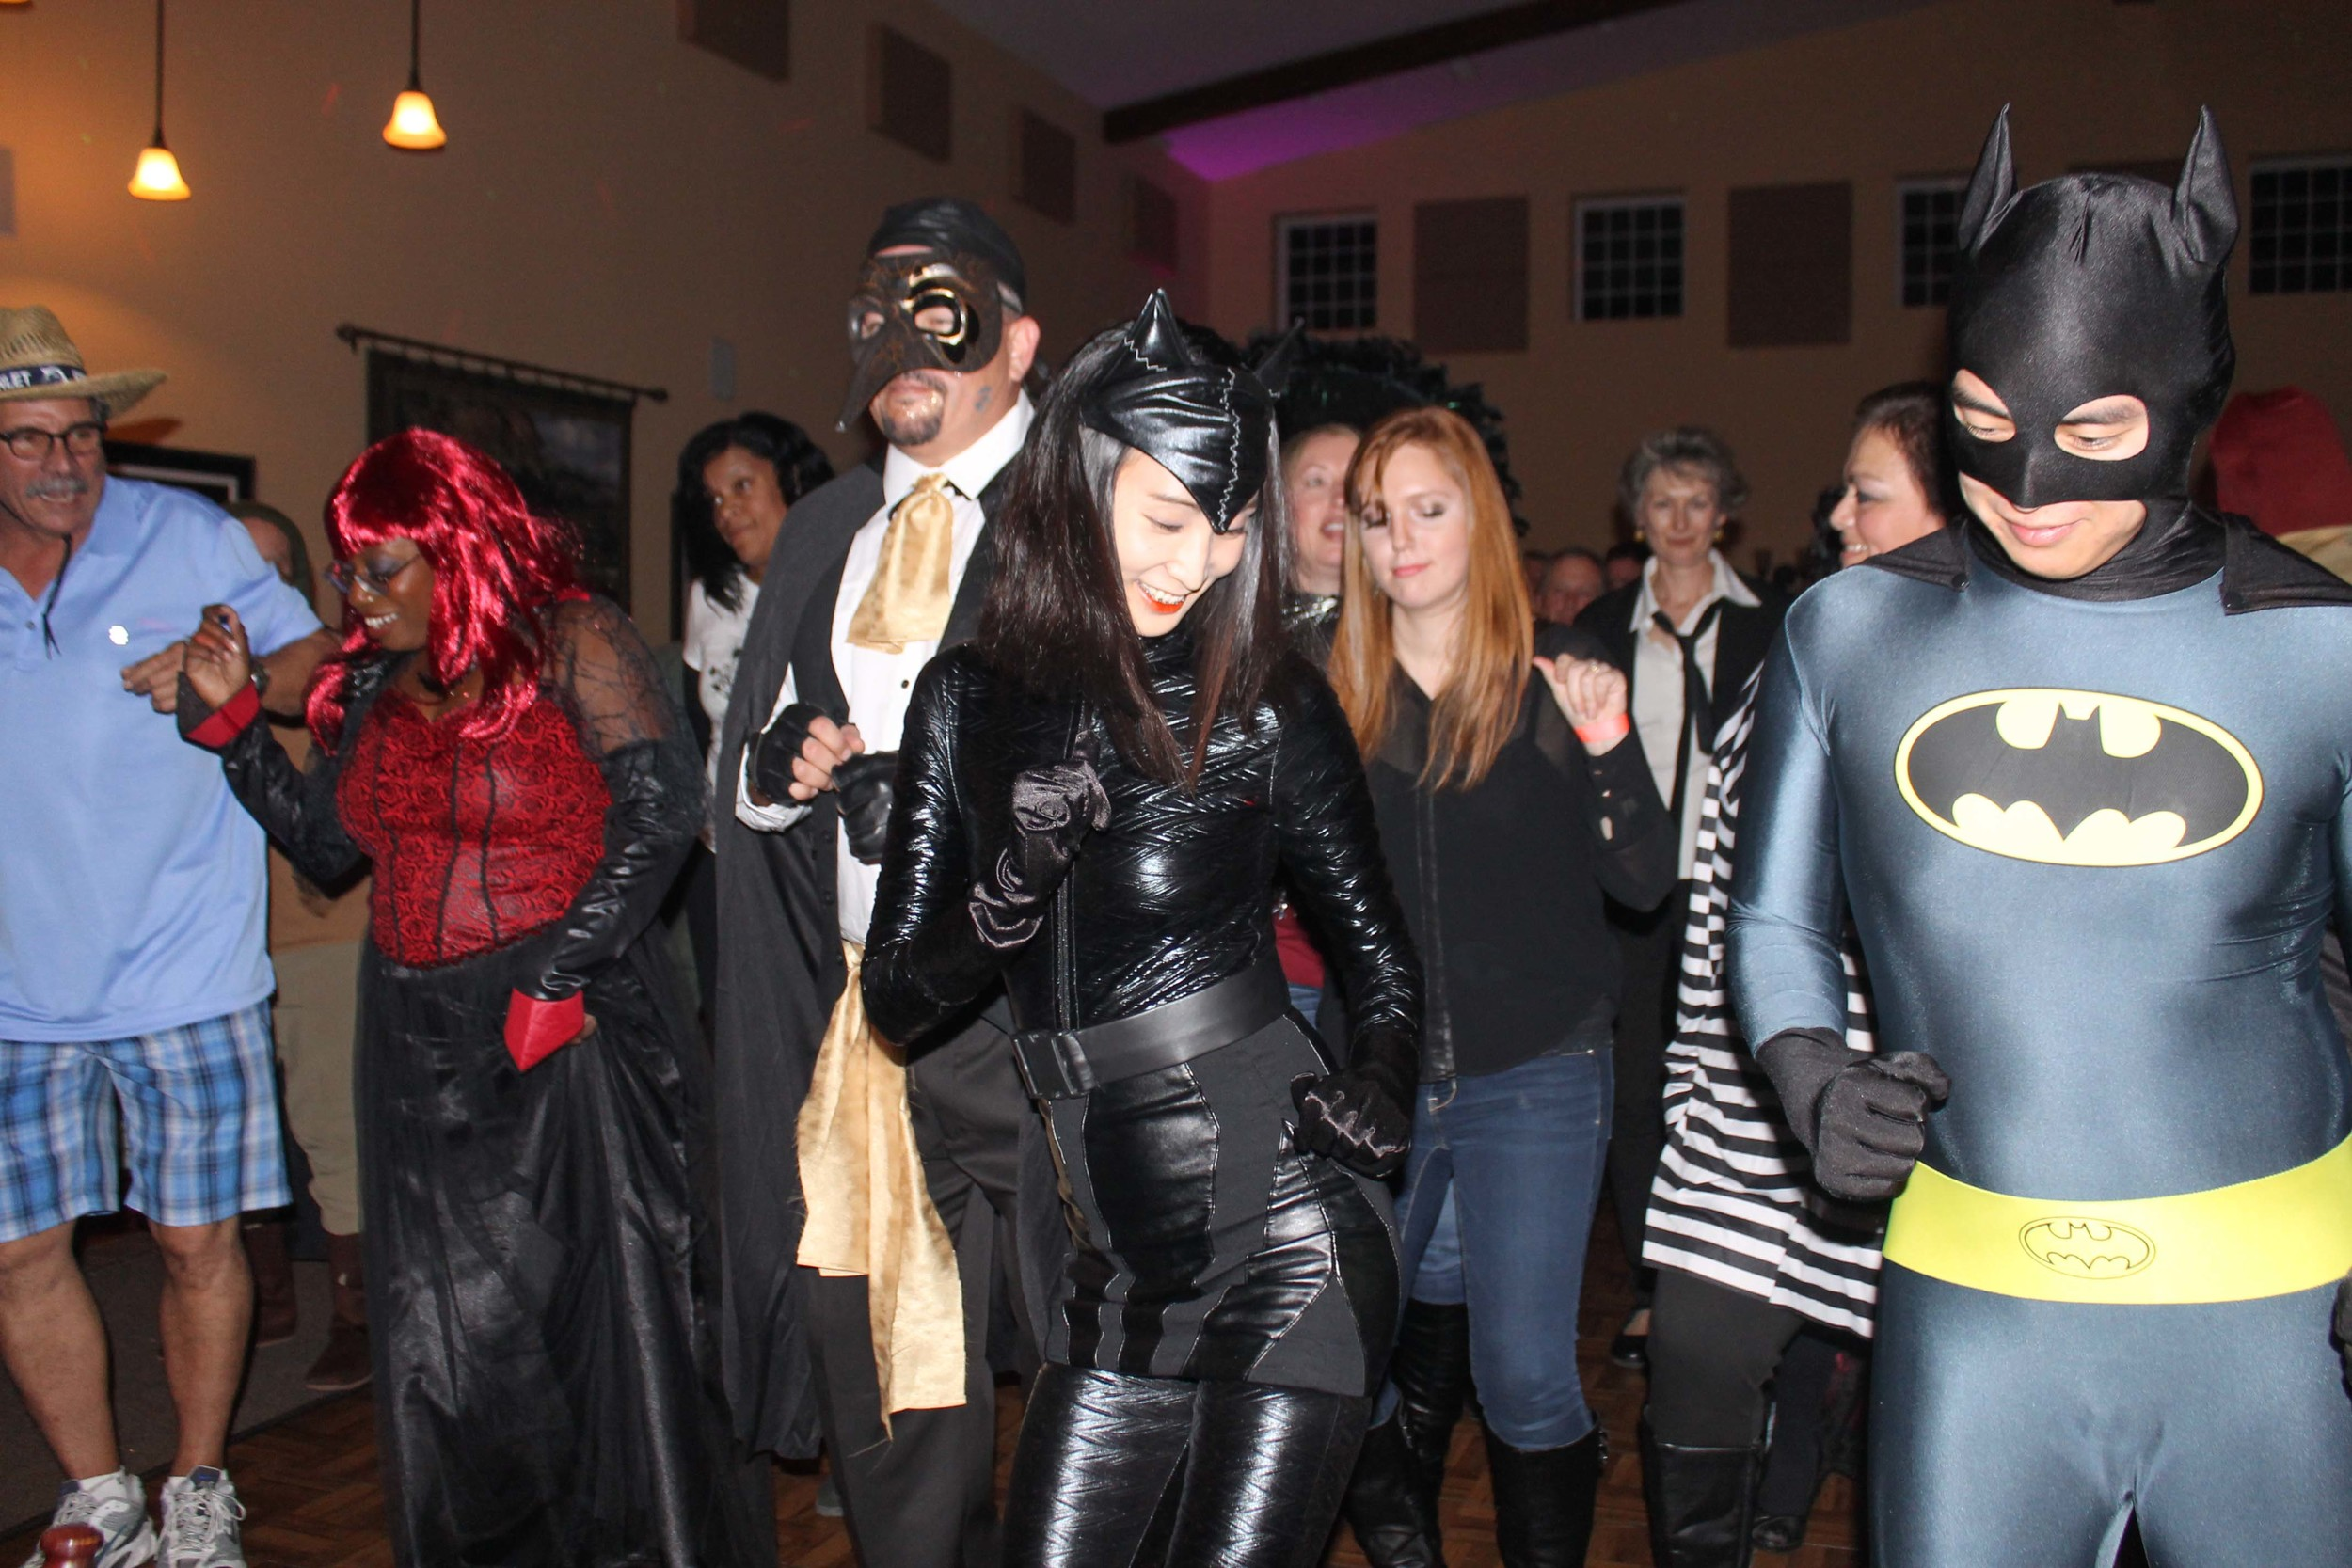 The Running Hare Vineyard/Calvert Brewing Company Halloween Party is always one for the books. Check out the highlights from 2014 and get your costume ready!